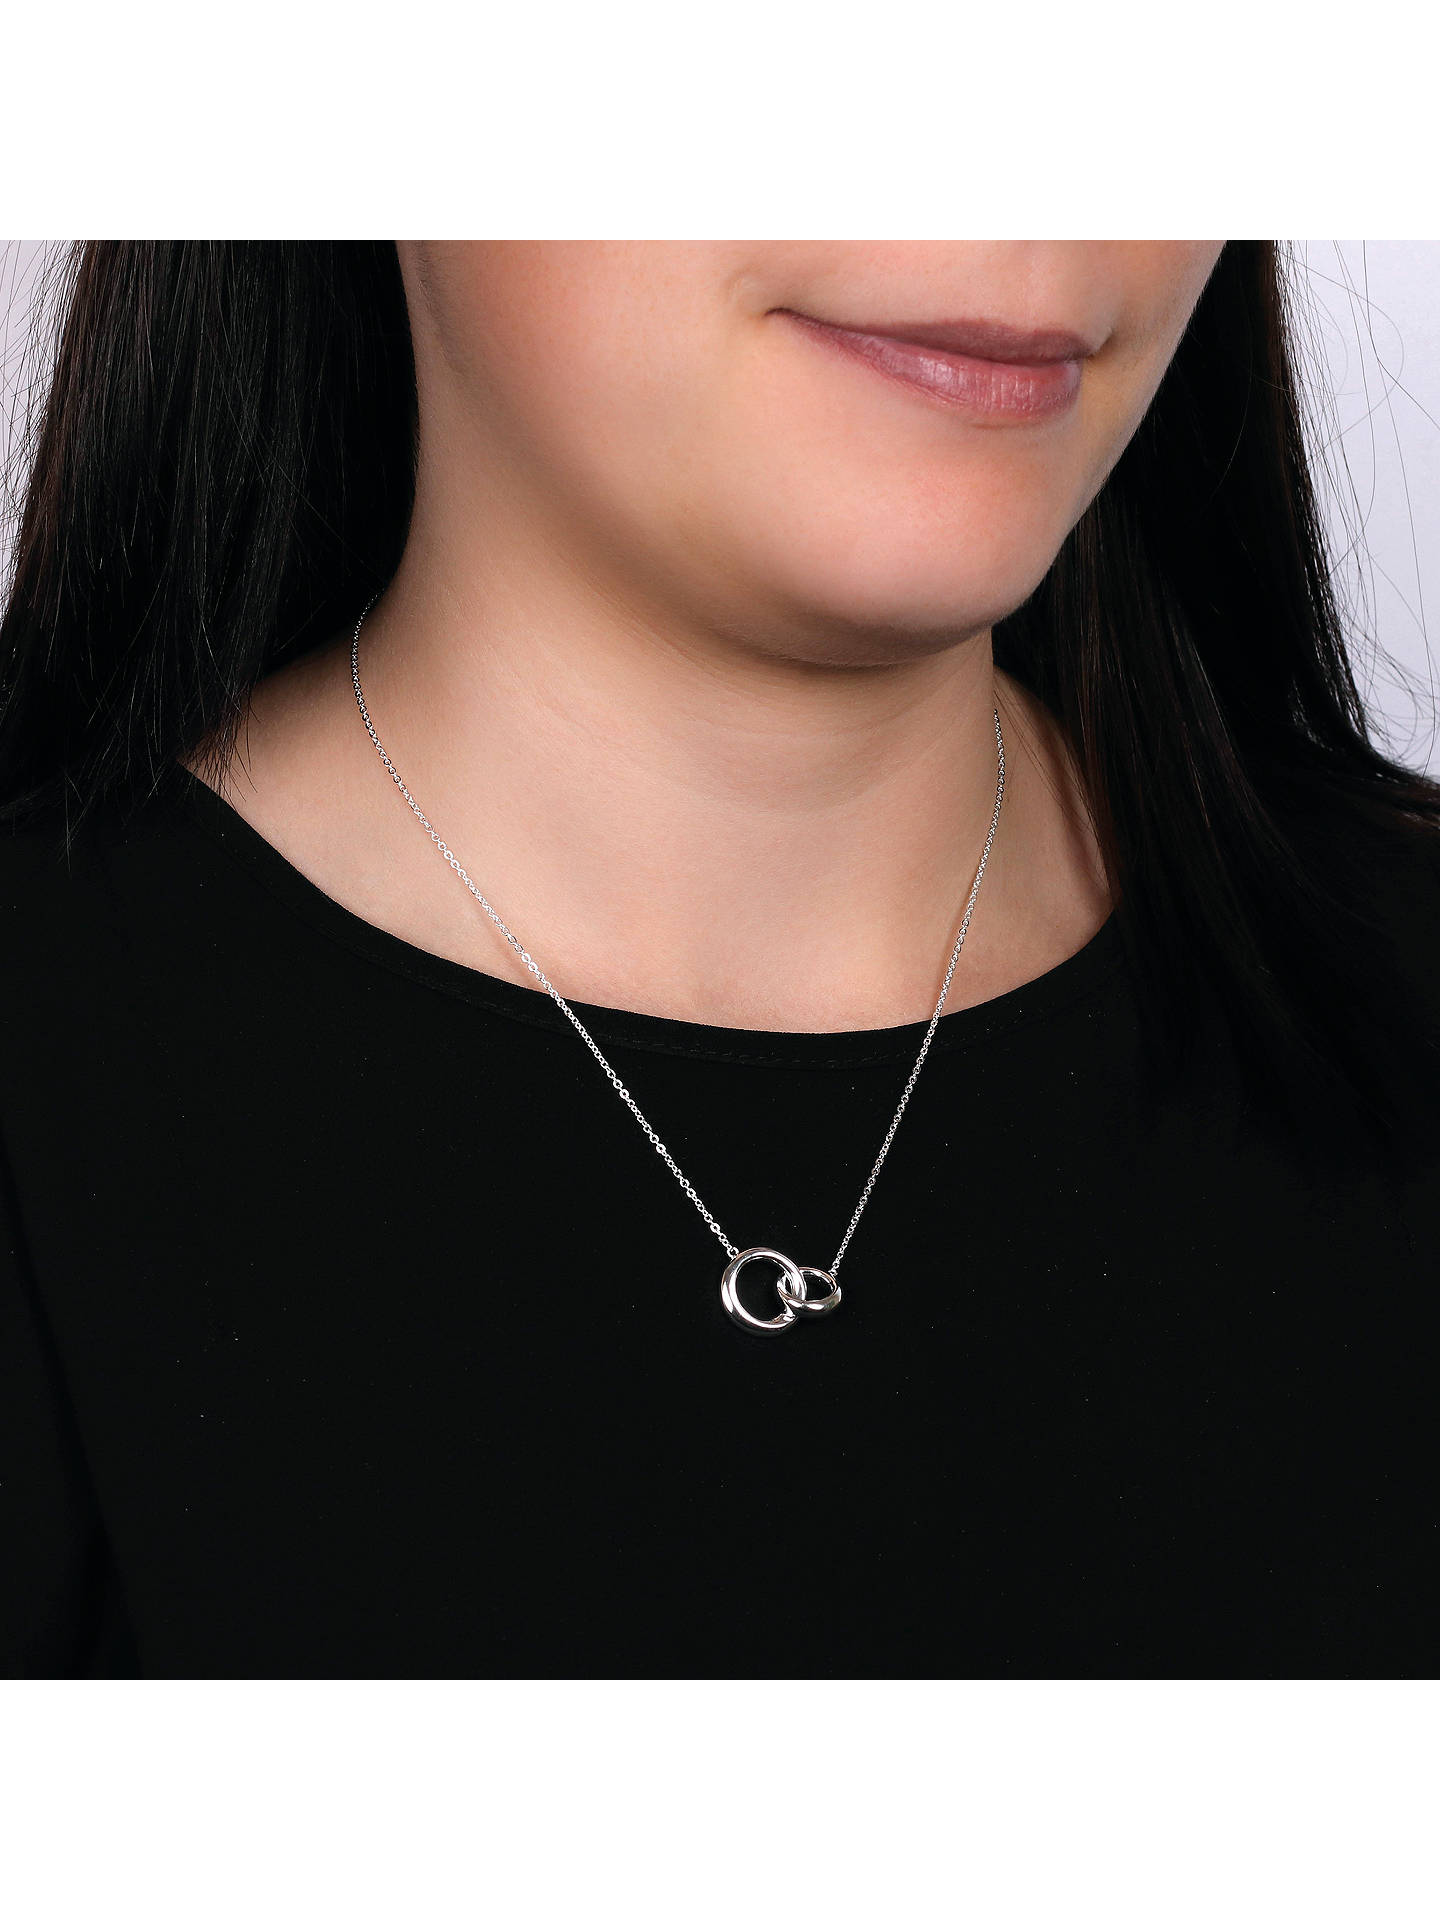 332ab228c ... Buy Kit Heath Bevel Curve Interlink Ring Pendant Necklace, Silver  Online at johnlewis.com